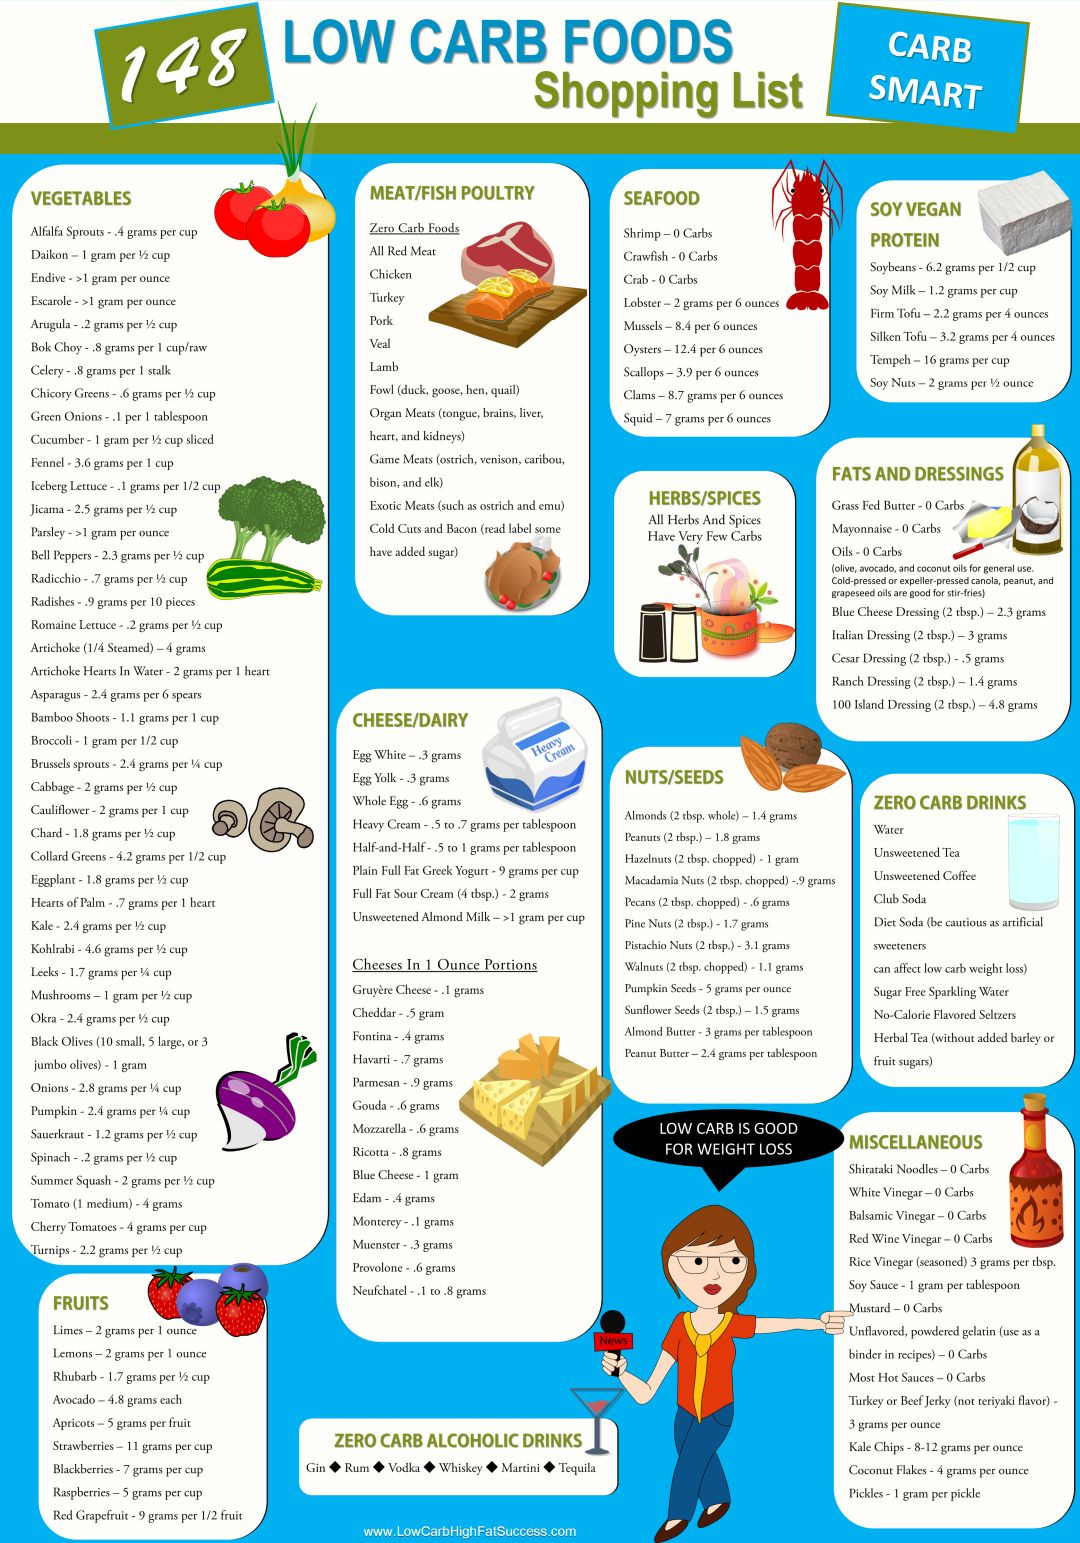 Grocery List For Low Carb Diet  148 Low Carb Foods Shopping List Infographic Low Carb